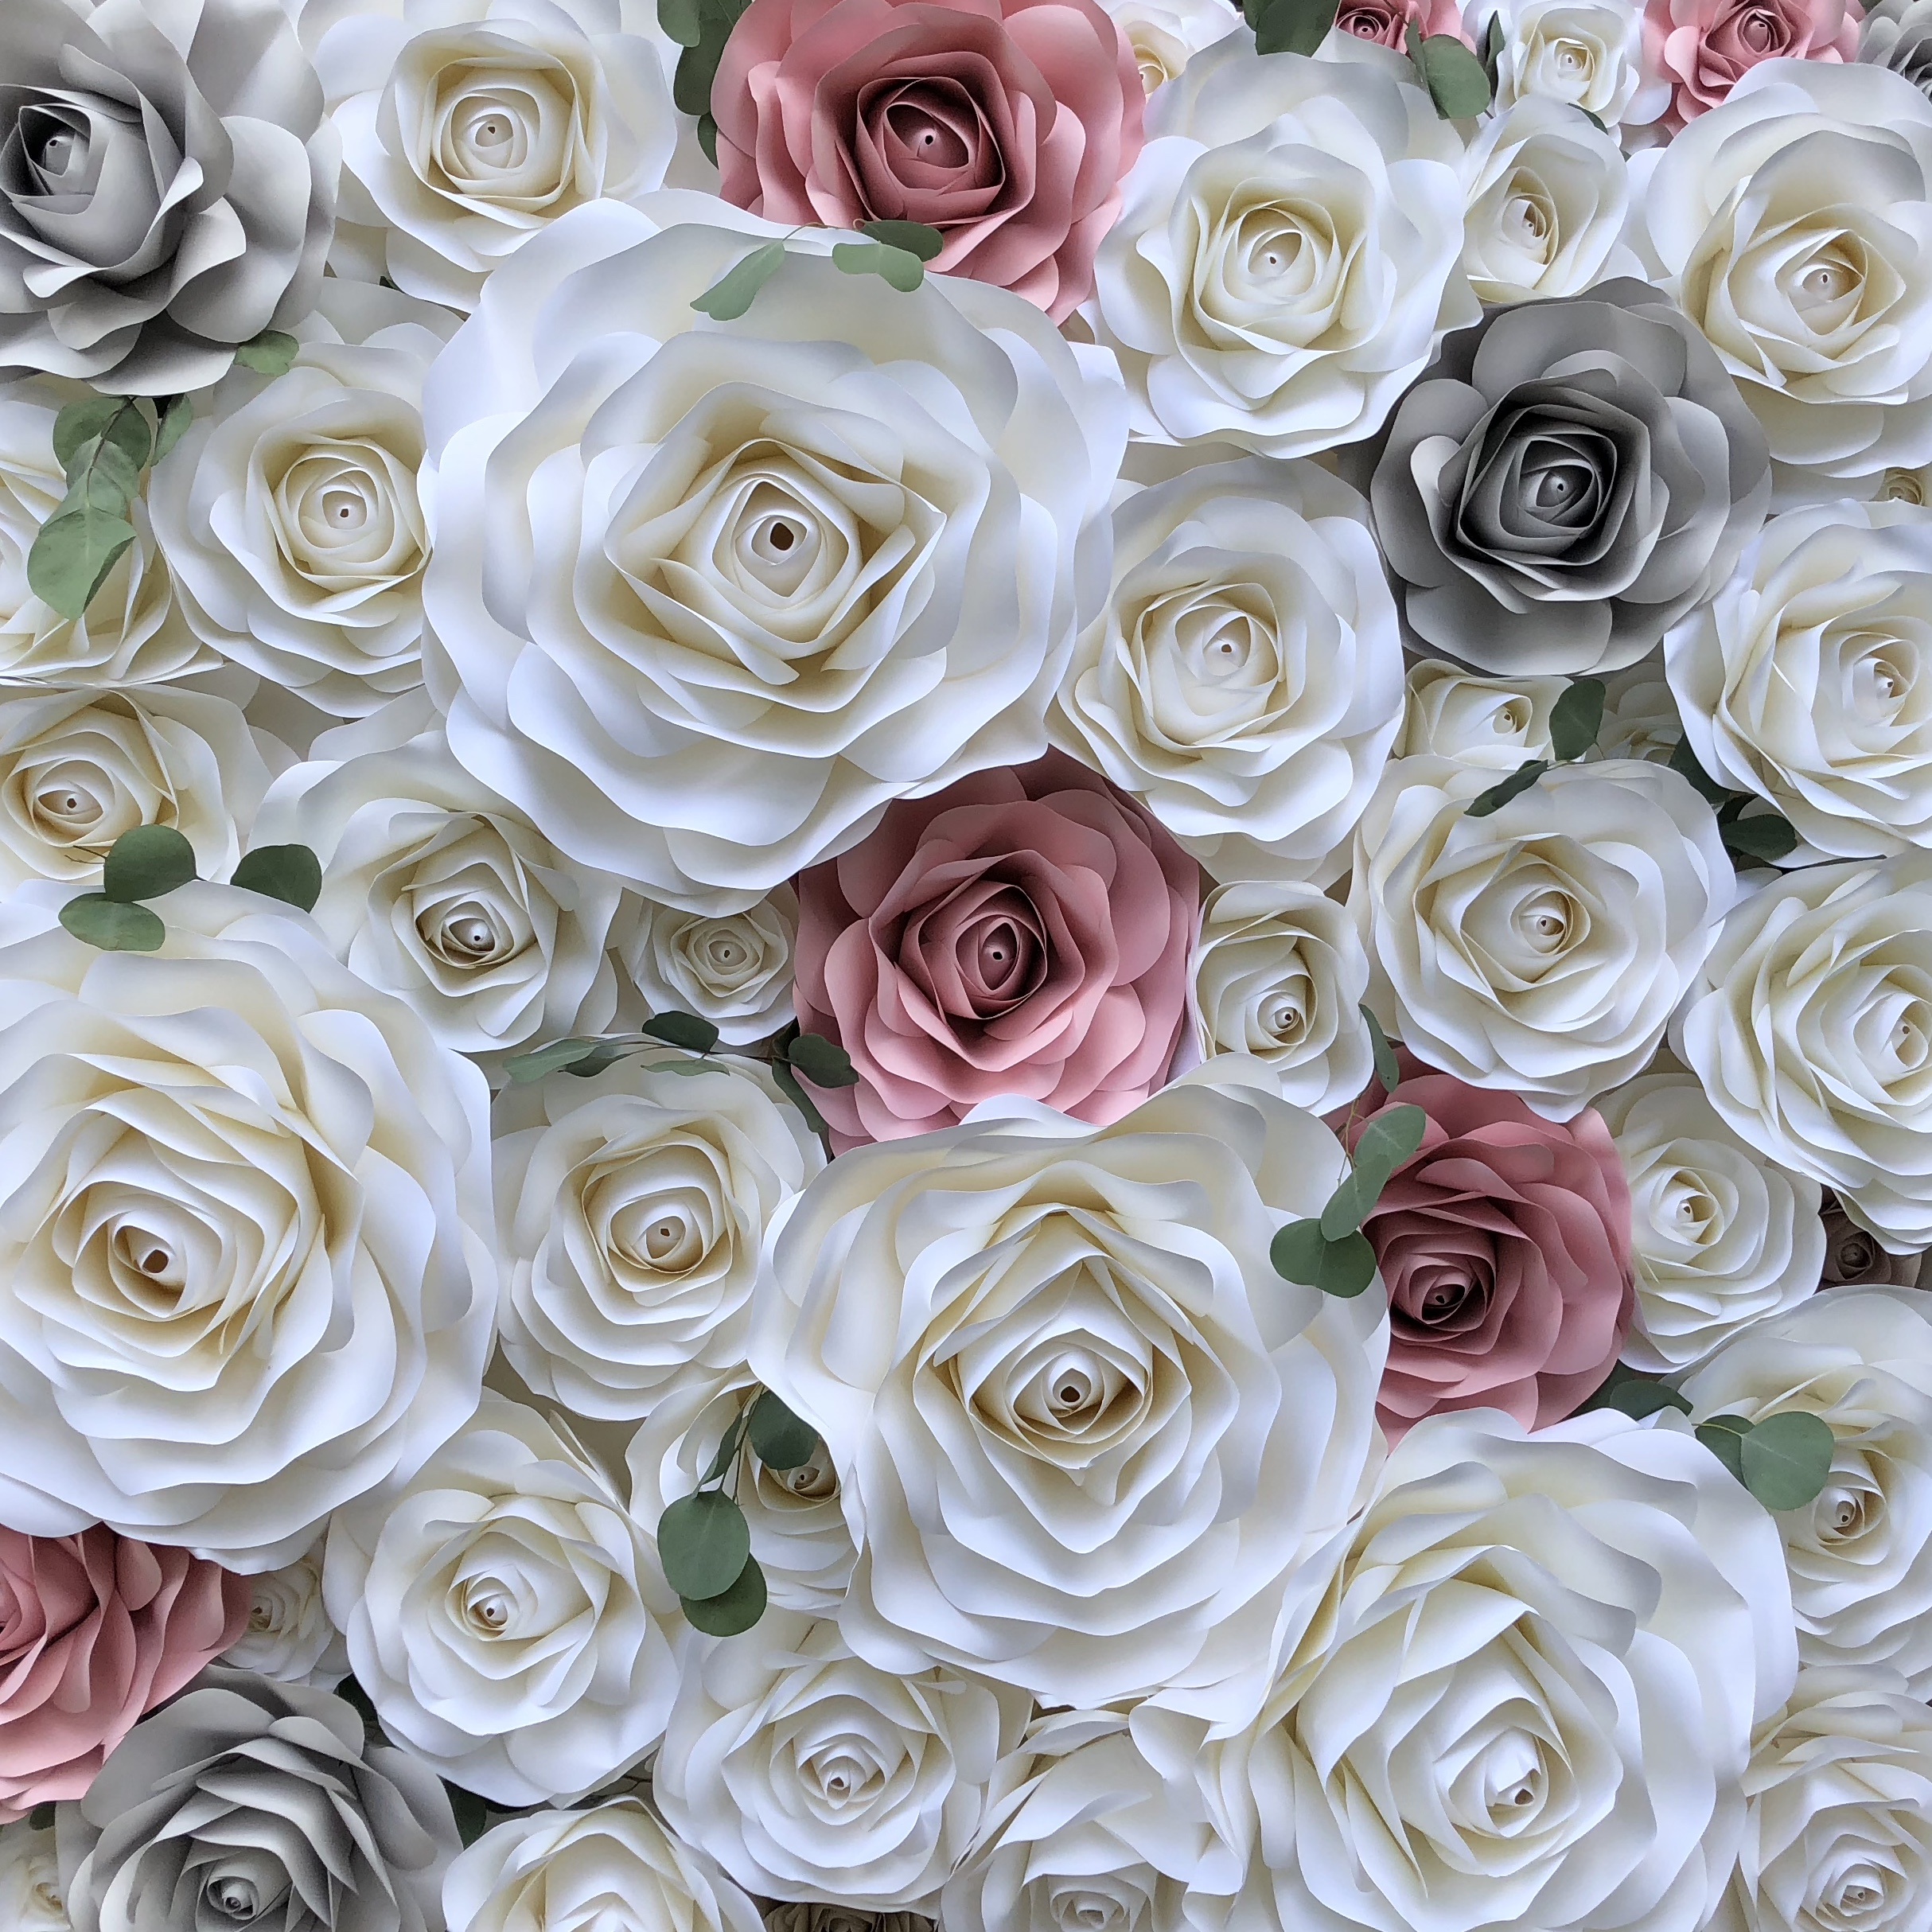 MANDY  WHITE, PINK & GRAY. ACCENTED WITH A HINT OF GREENERY